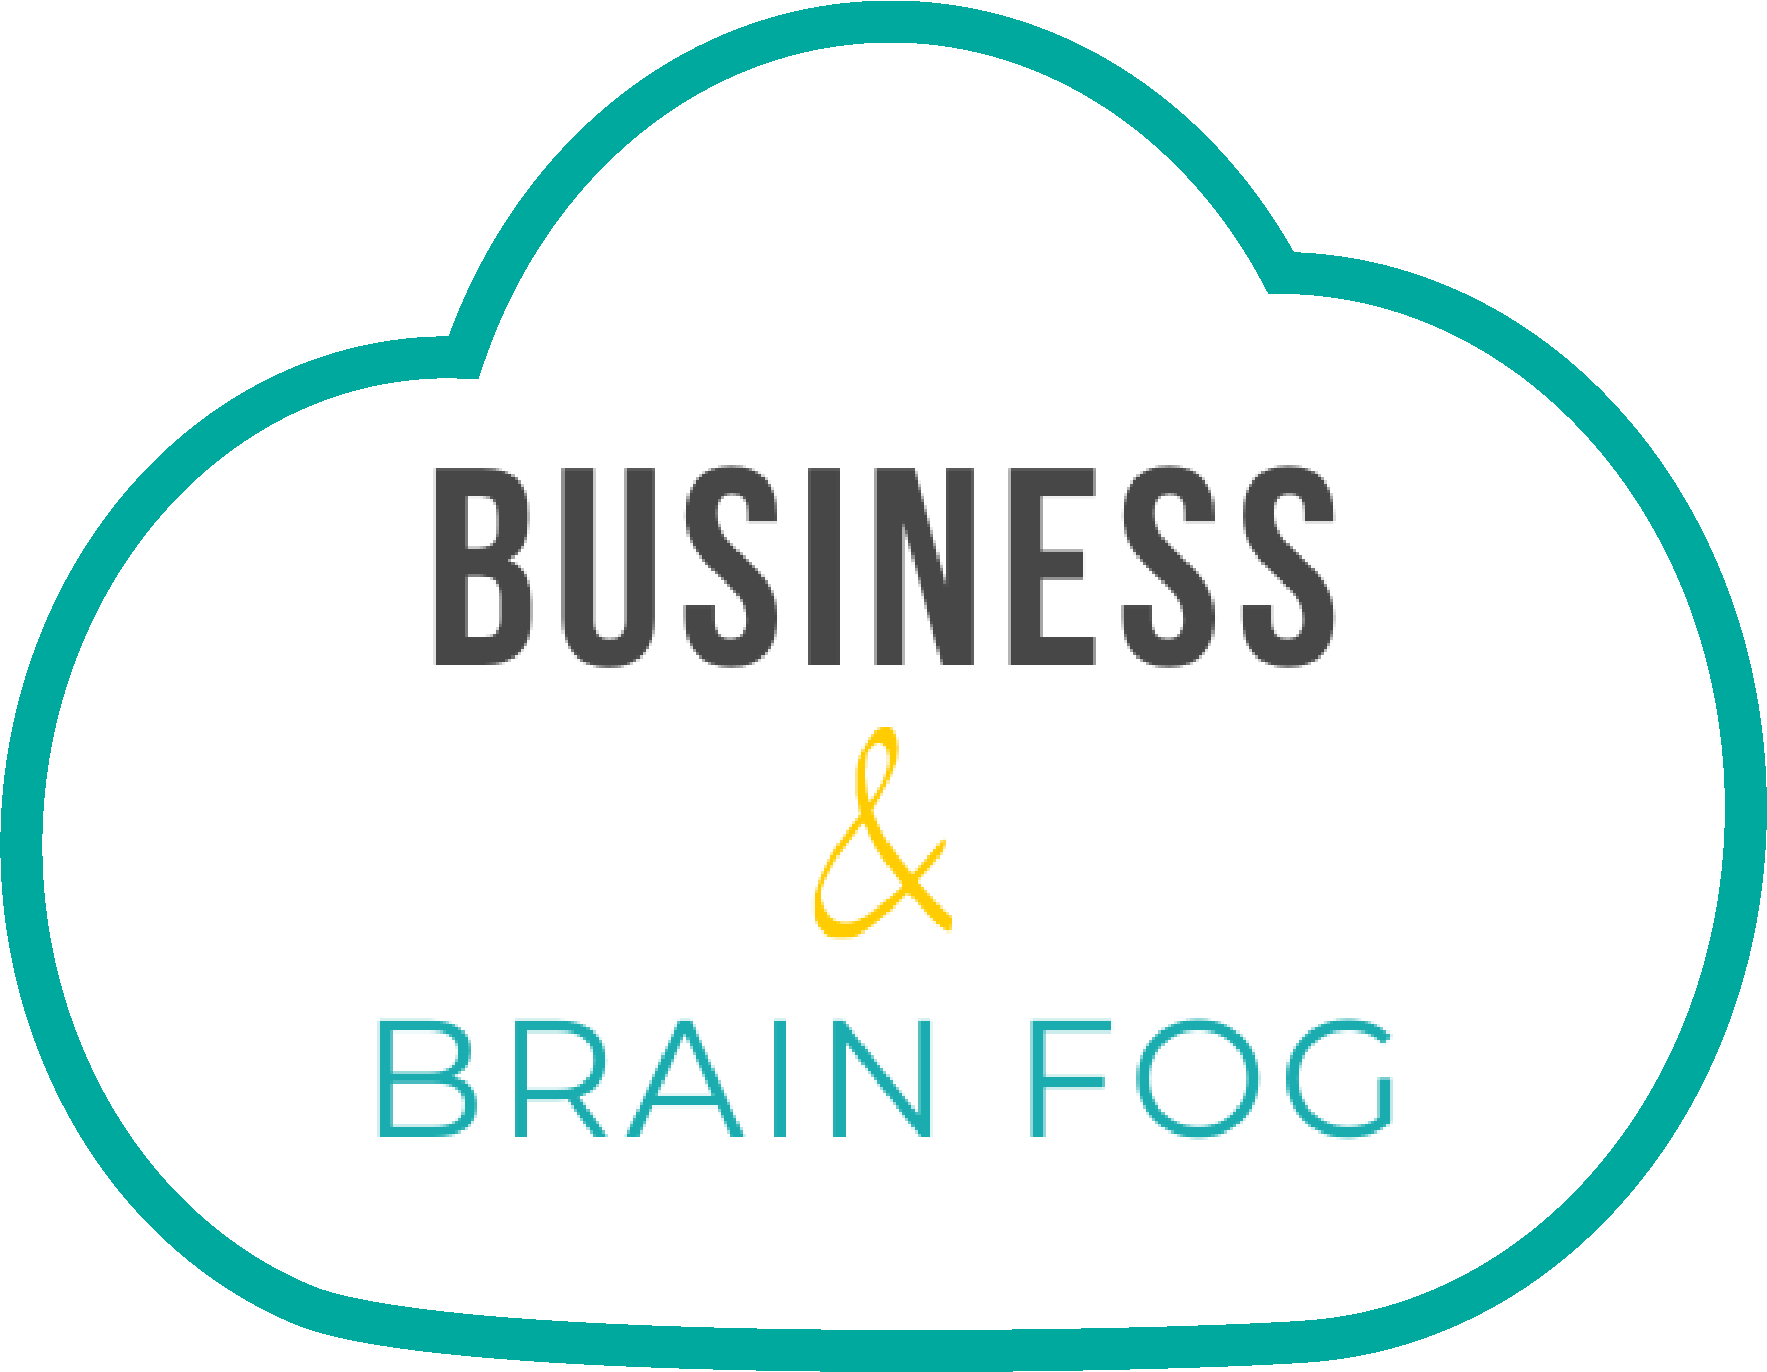 Business and Brain Fog